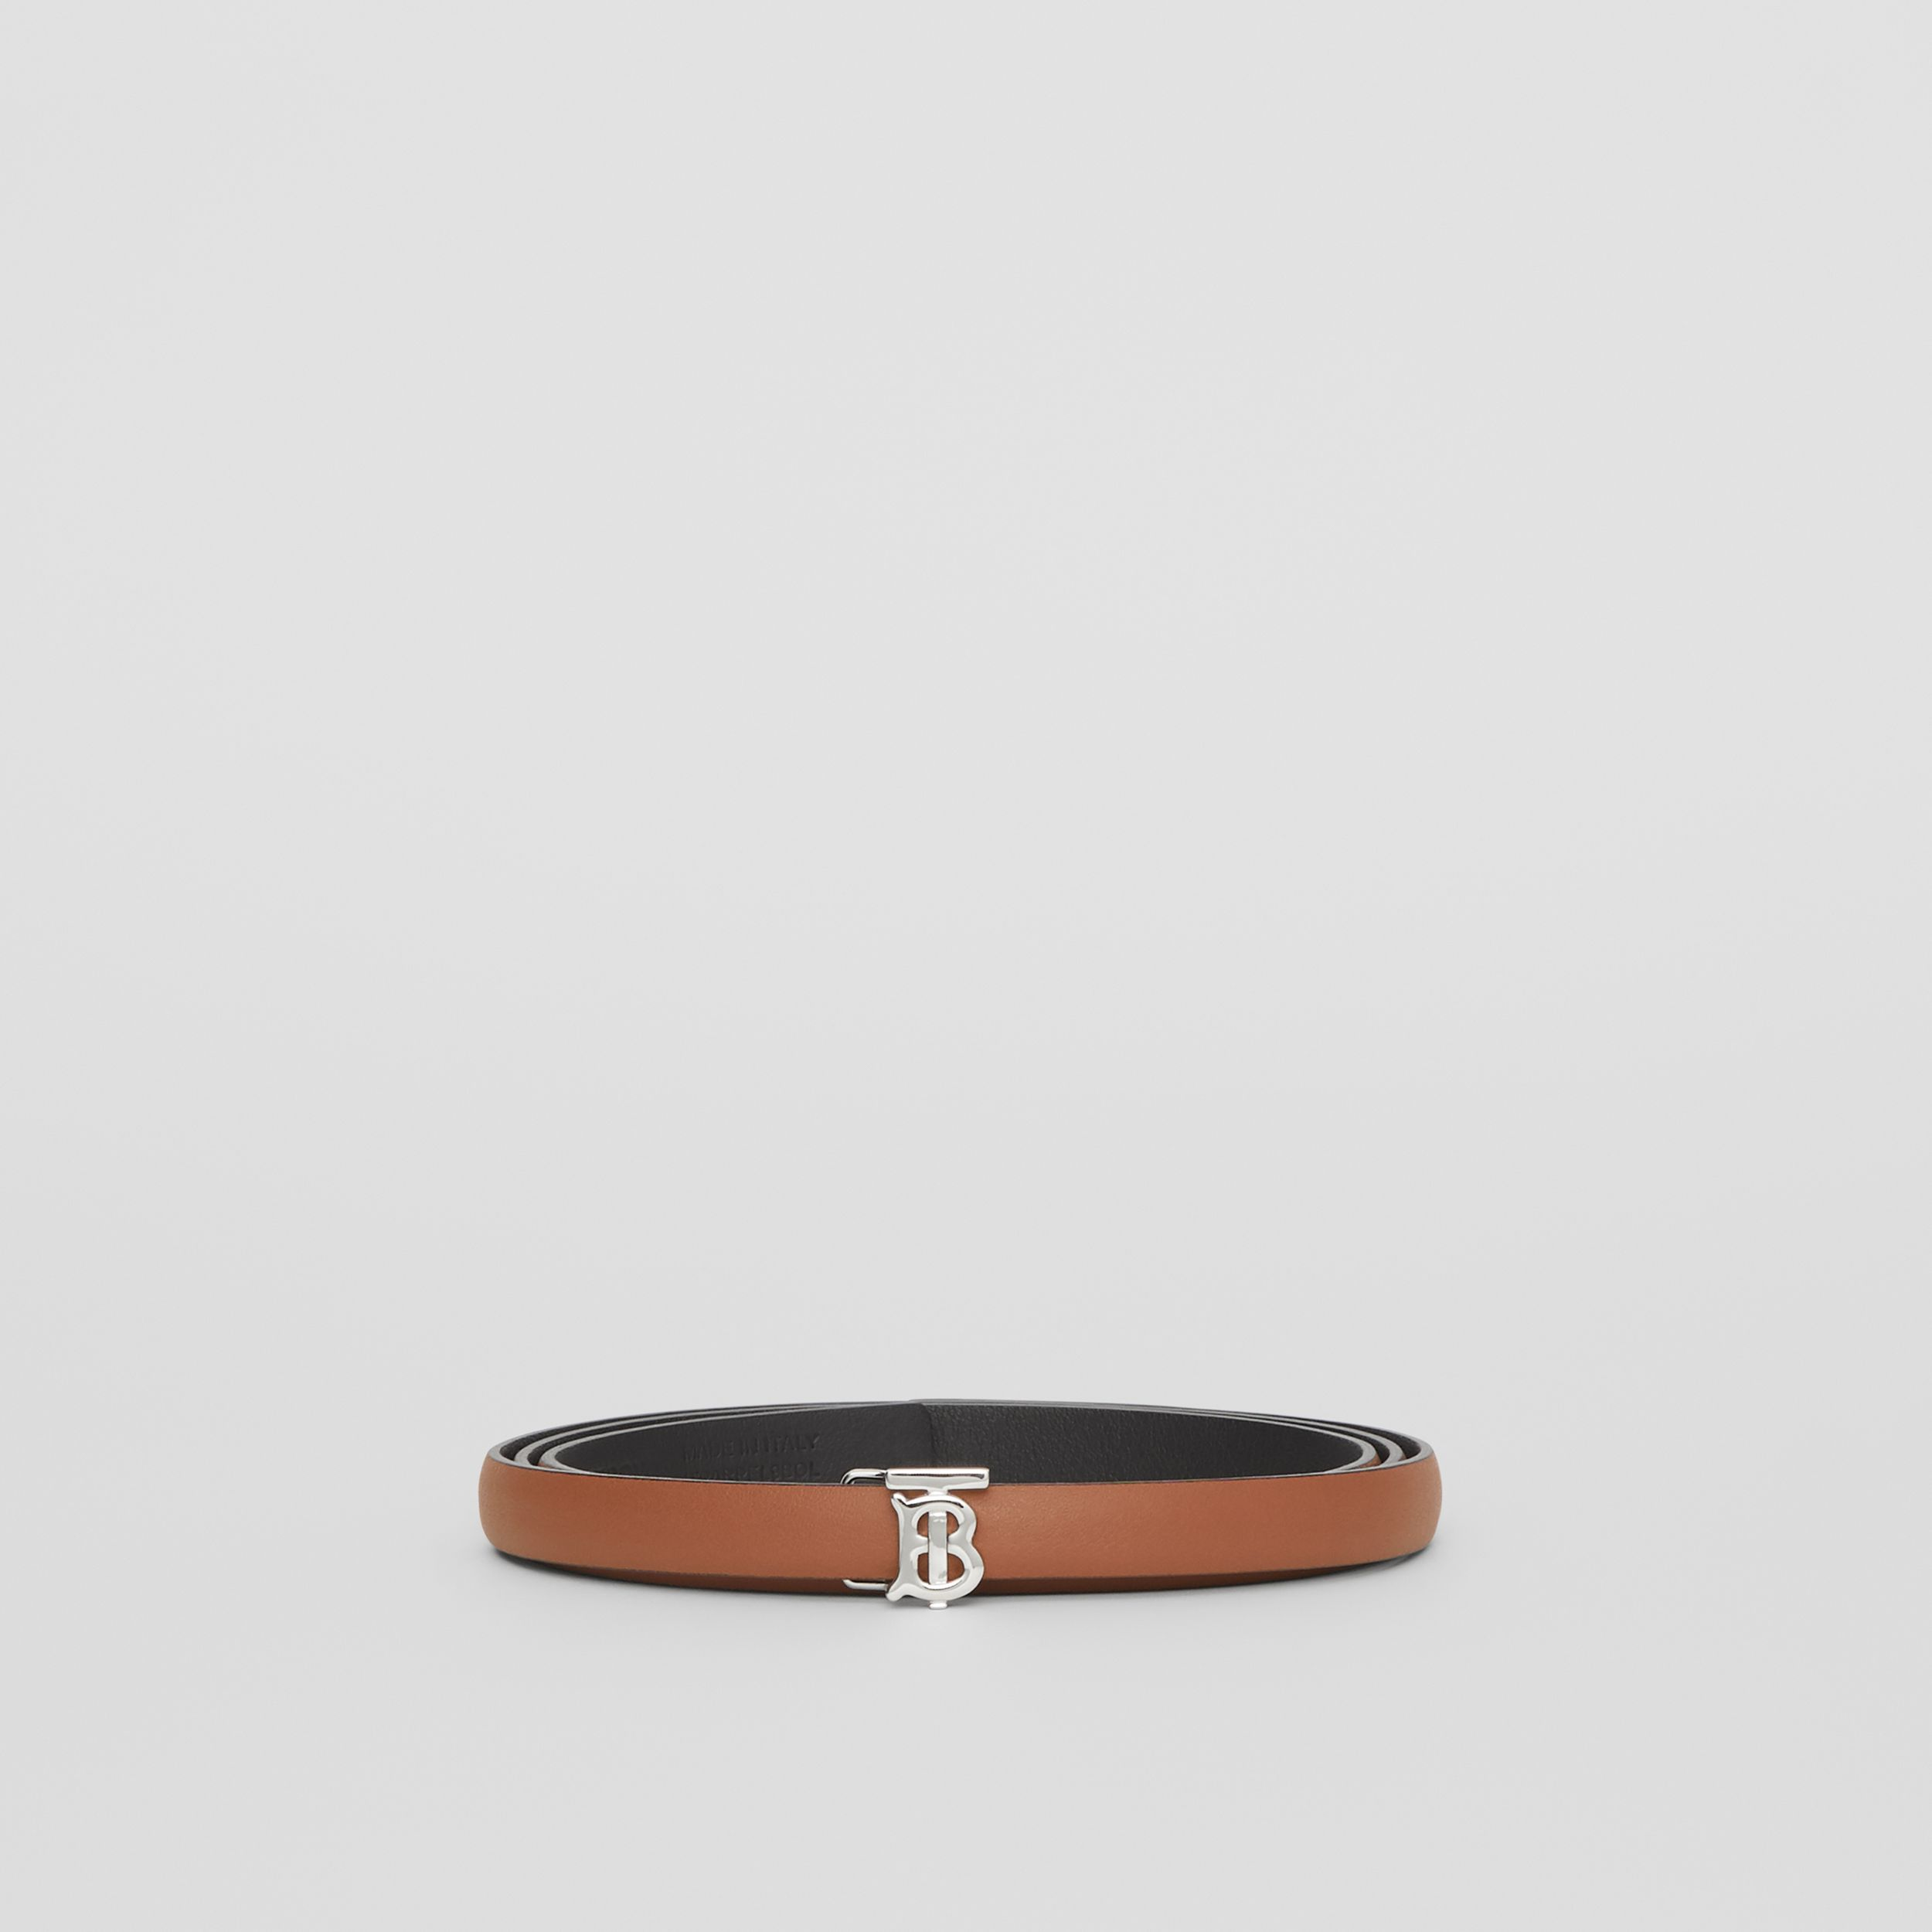 Reversible Monogram Motif Leather Wrap Belt in Malt Brown/black - Women | Burberry - 4